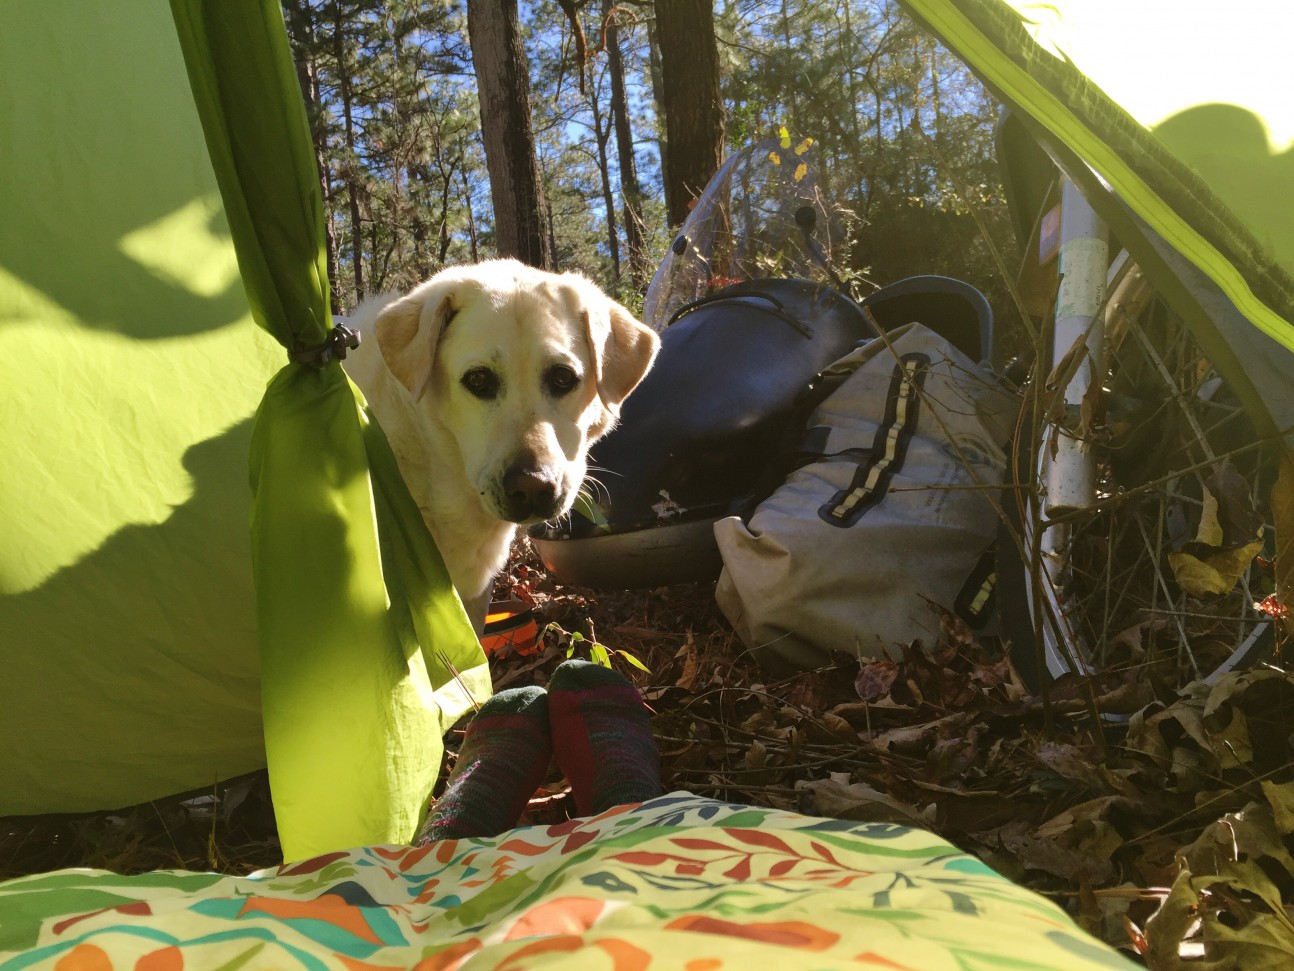 Baylor the Sidecar Dog Goes Camping